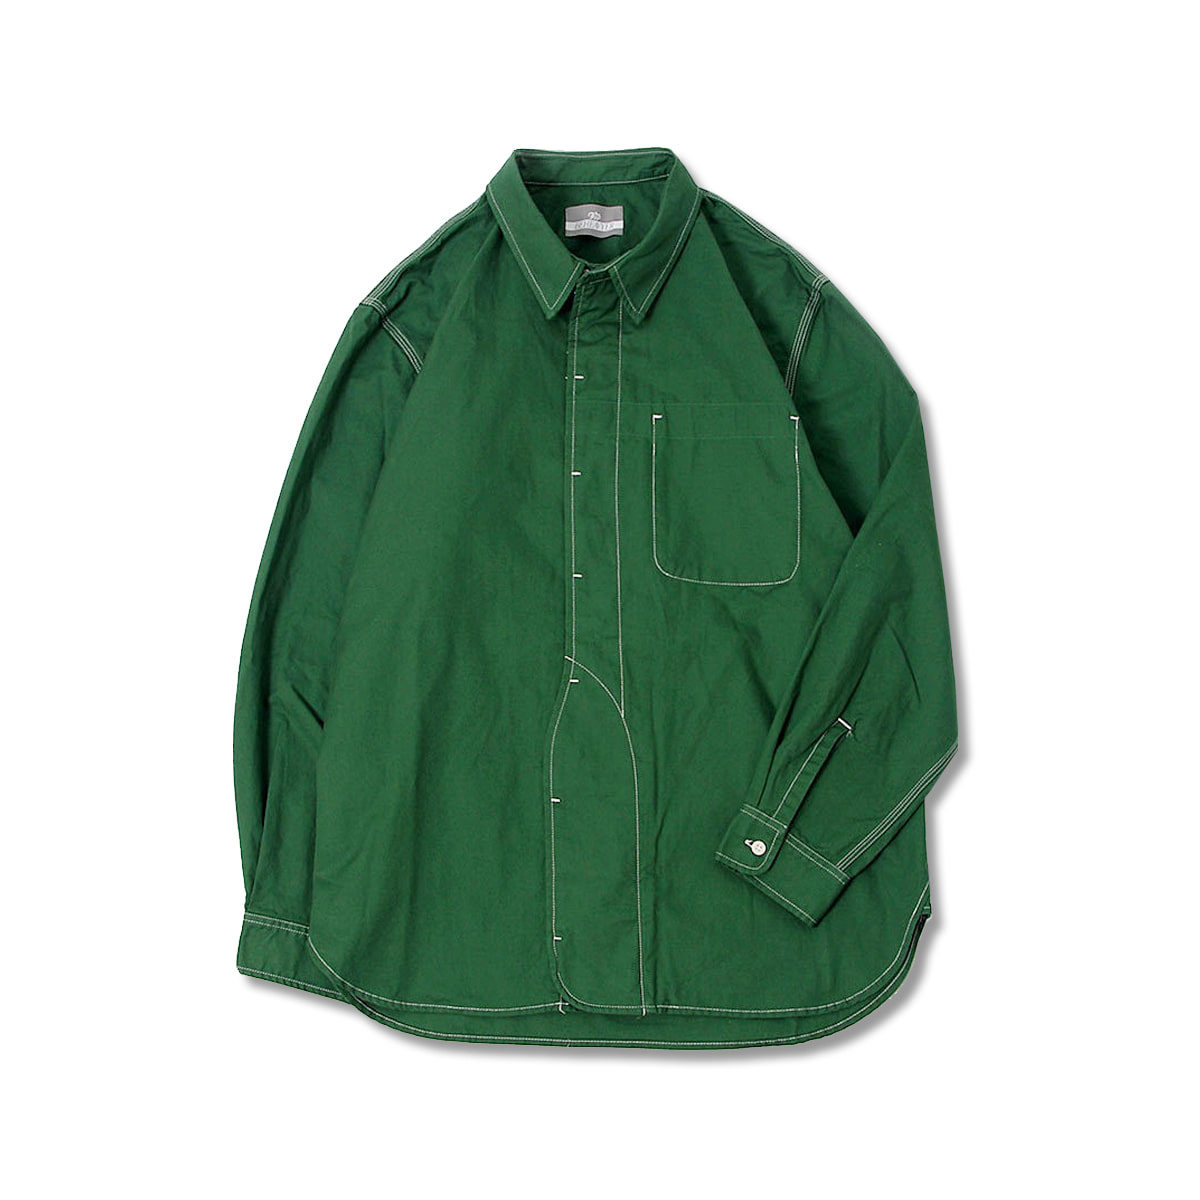 [BEHEAVYER] 1 1/2 SHIRT 'GREEN'